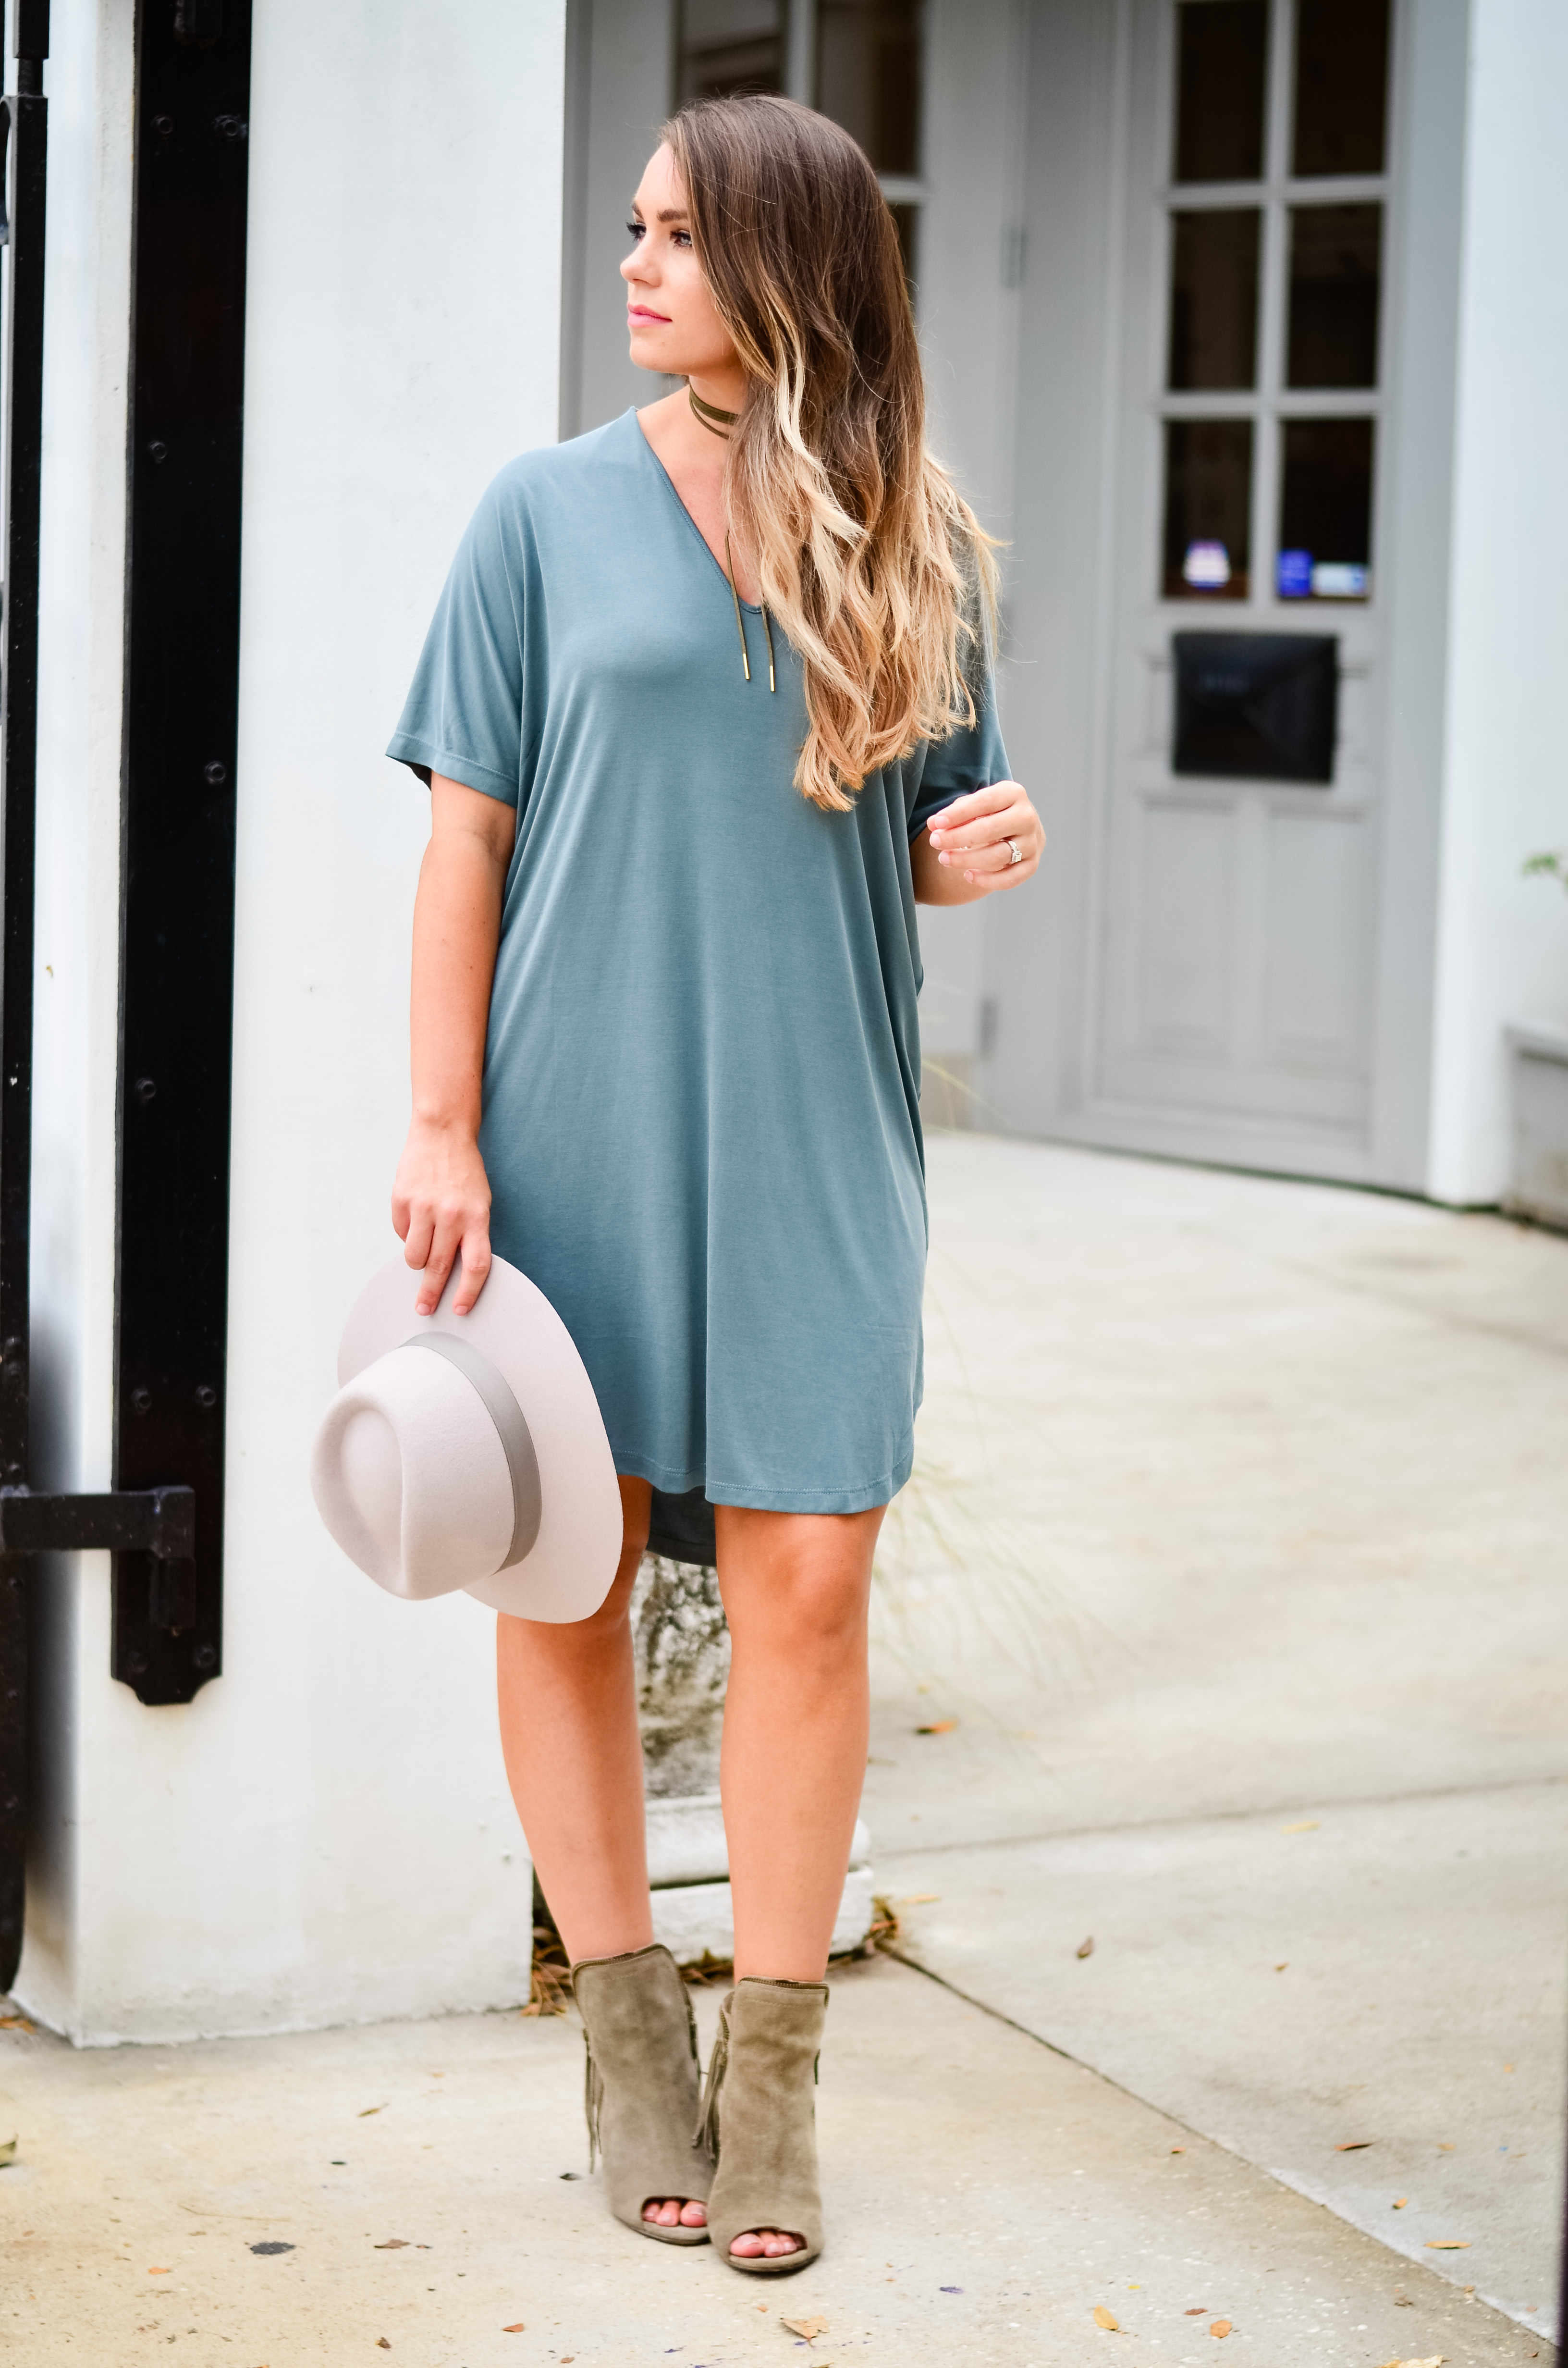 light-teal-dress-hat-booties-goldfinch-21